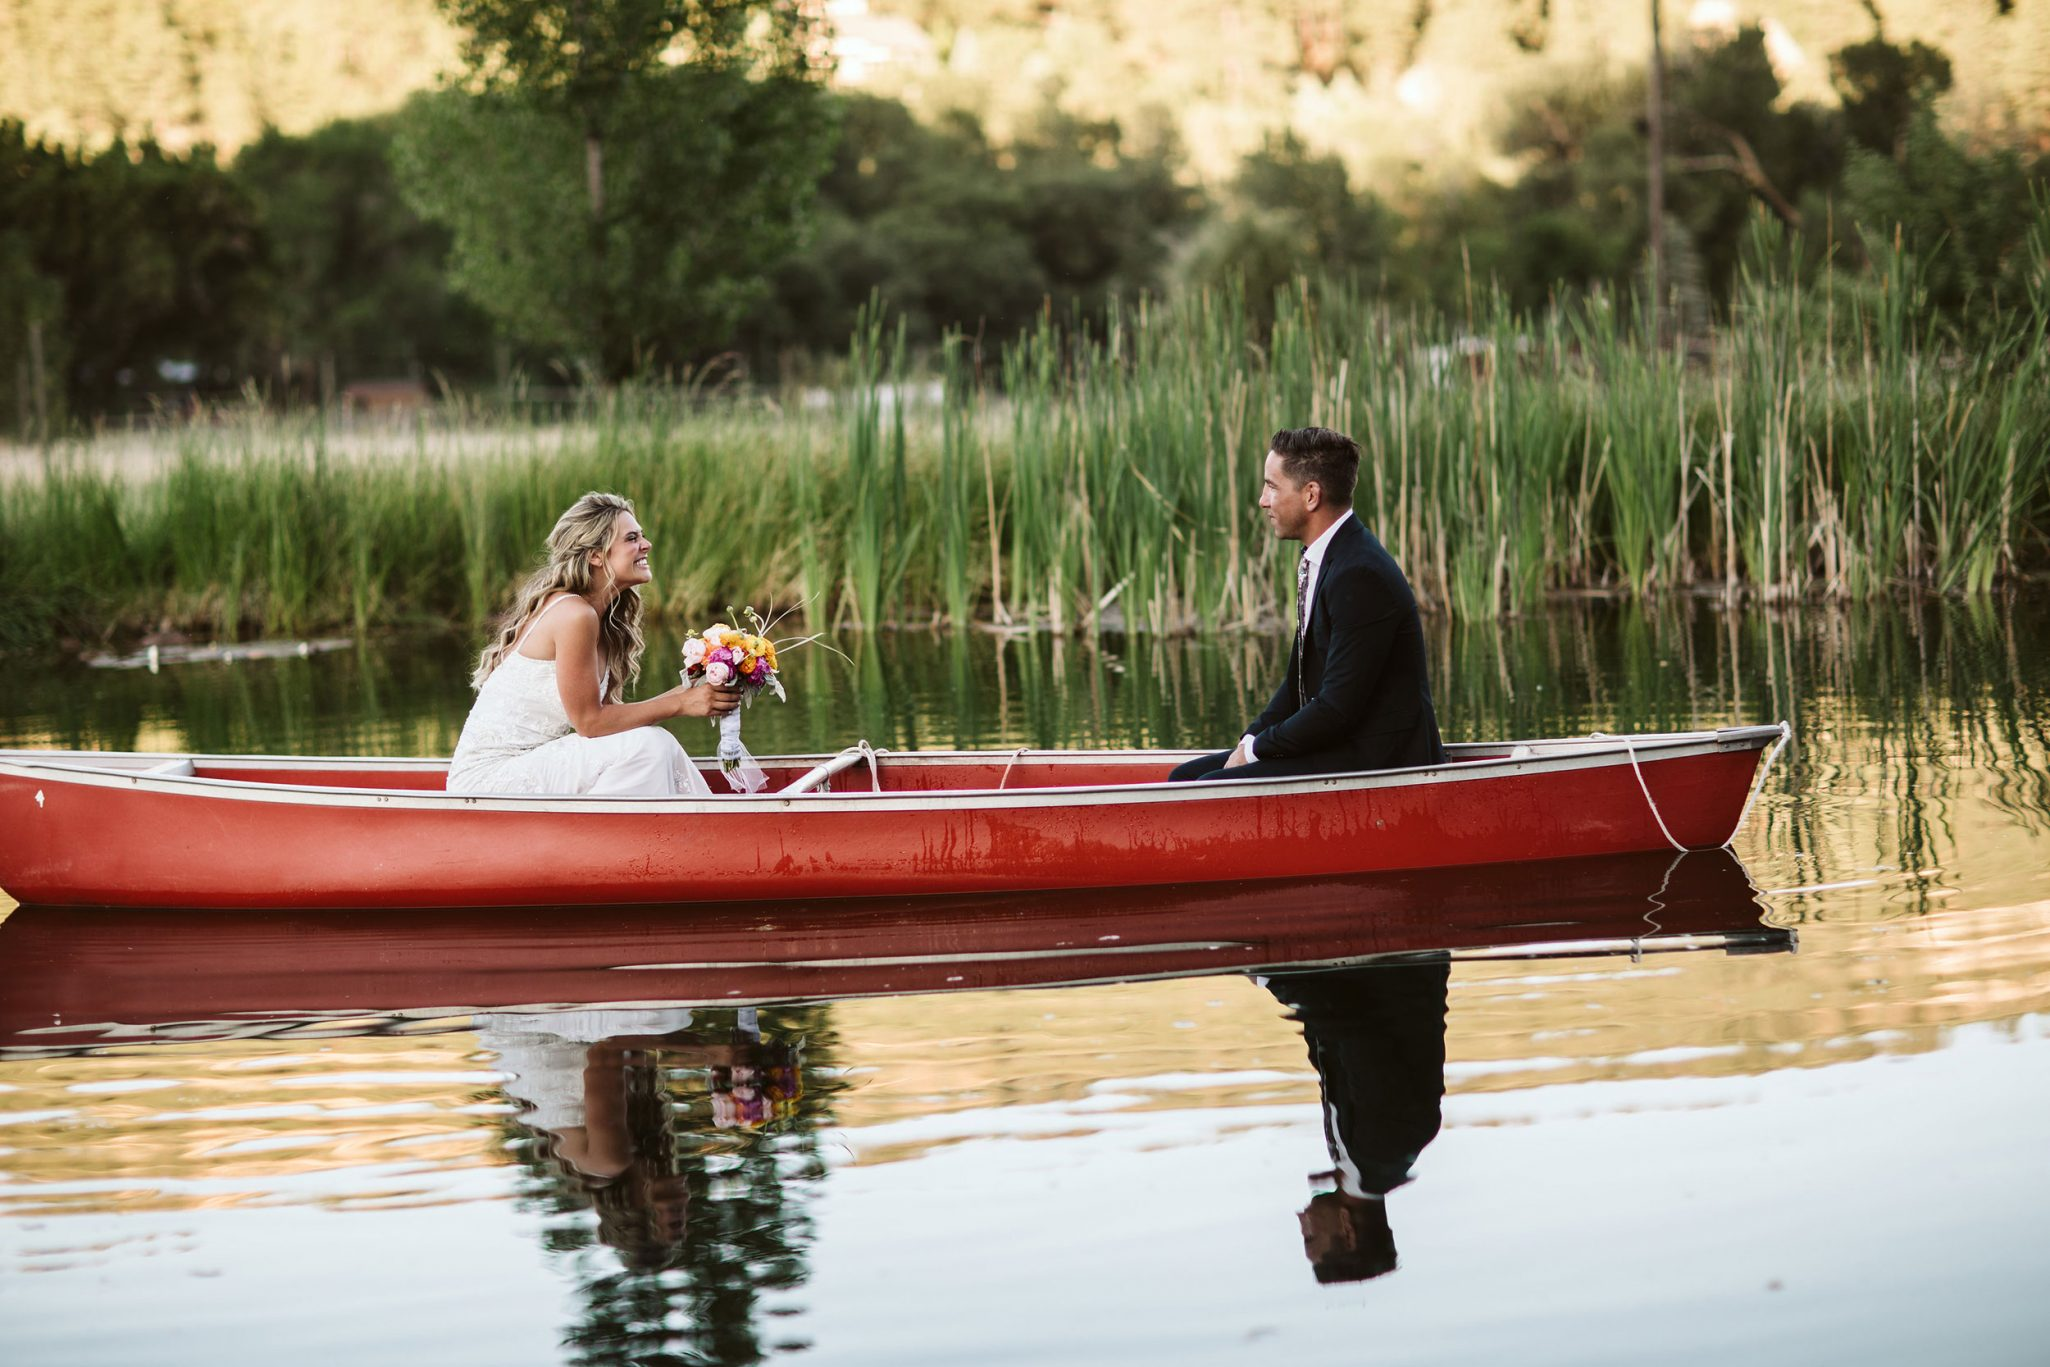 Bride + Groom + canoe